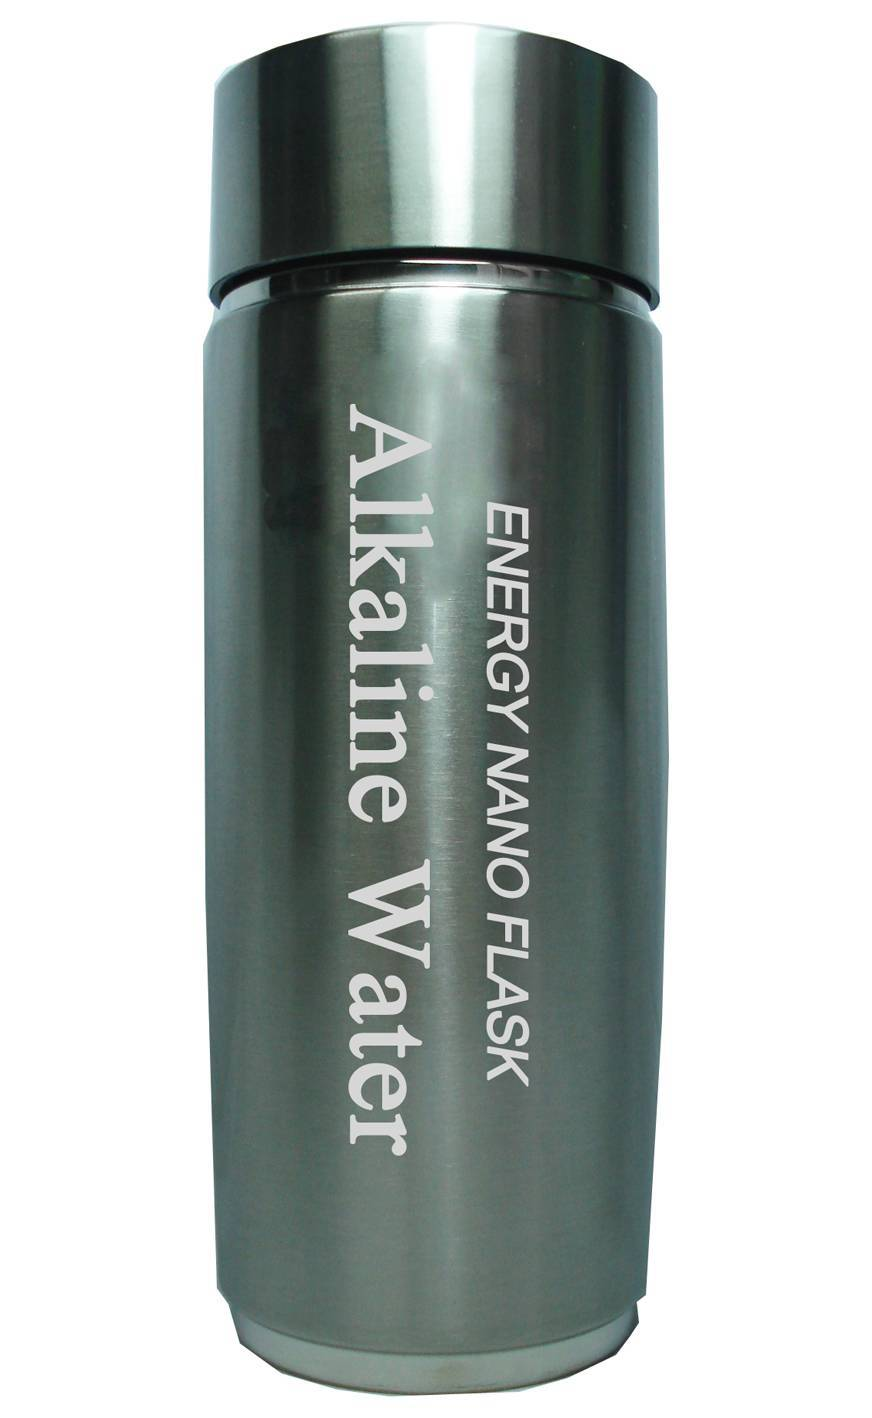 analysis of nano energy water flask company Buy low price, high quality alkaline water energy nano flask with worldwide shipping on aliexpresscom.